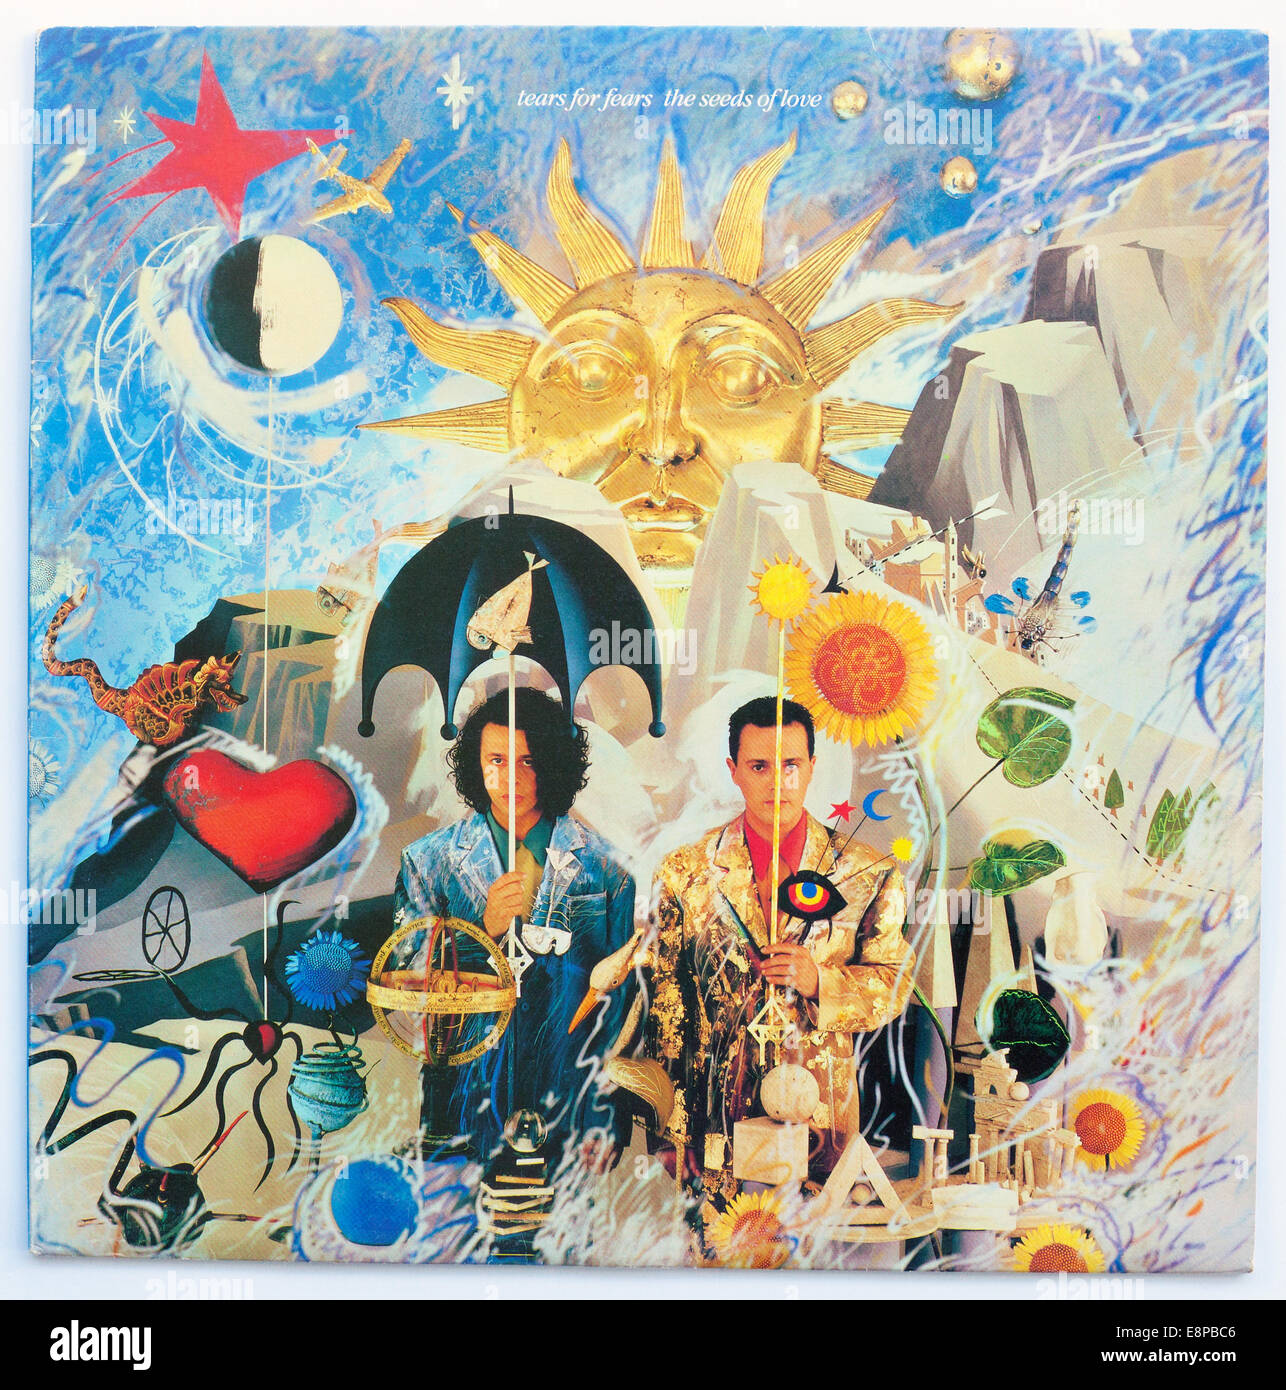 Cover Art for Tears For Fears - The Seeds Of Love, 1989 vinyl album on Fontana/Mercury Records - Stock Image